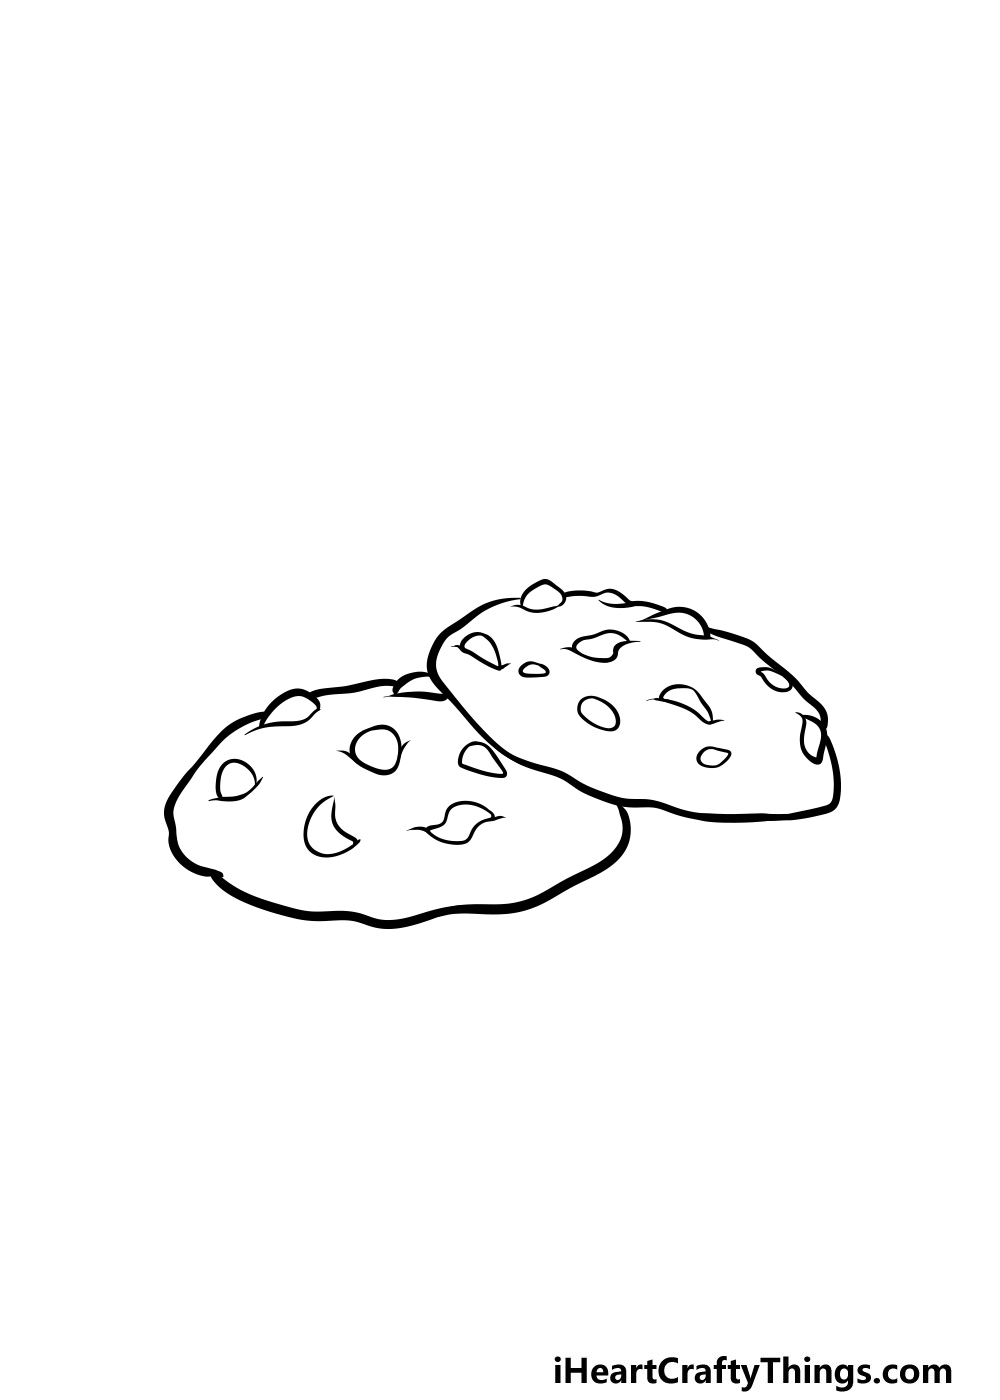 drawing a cookie step 4